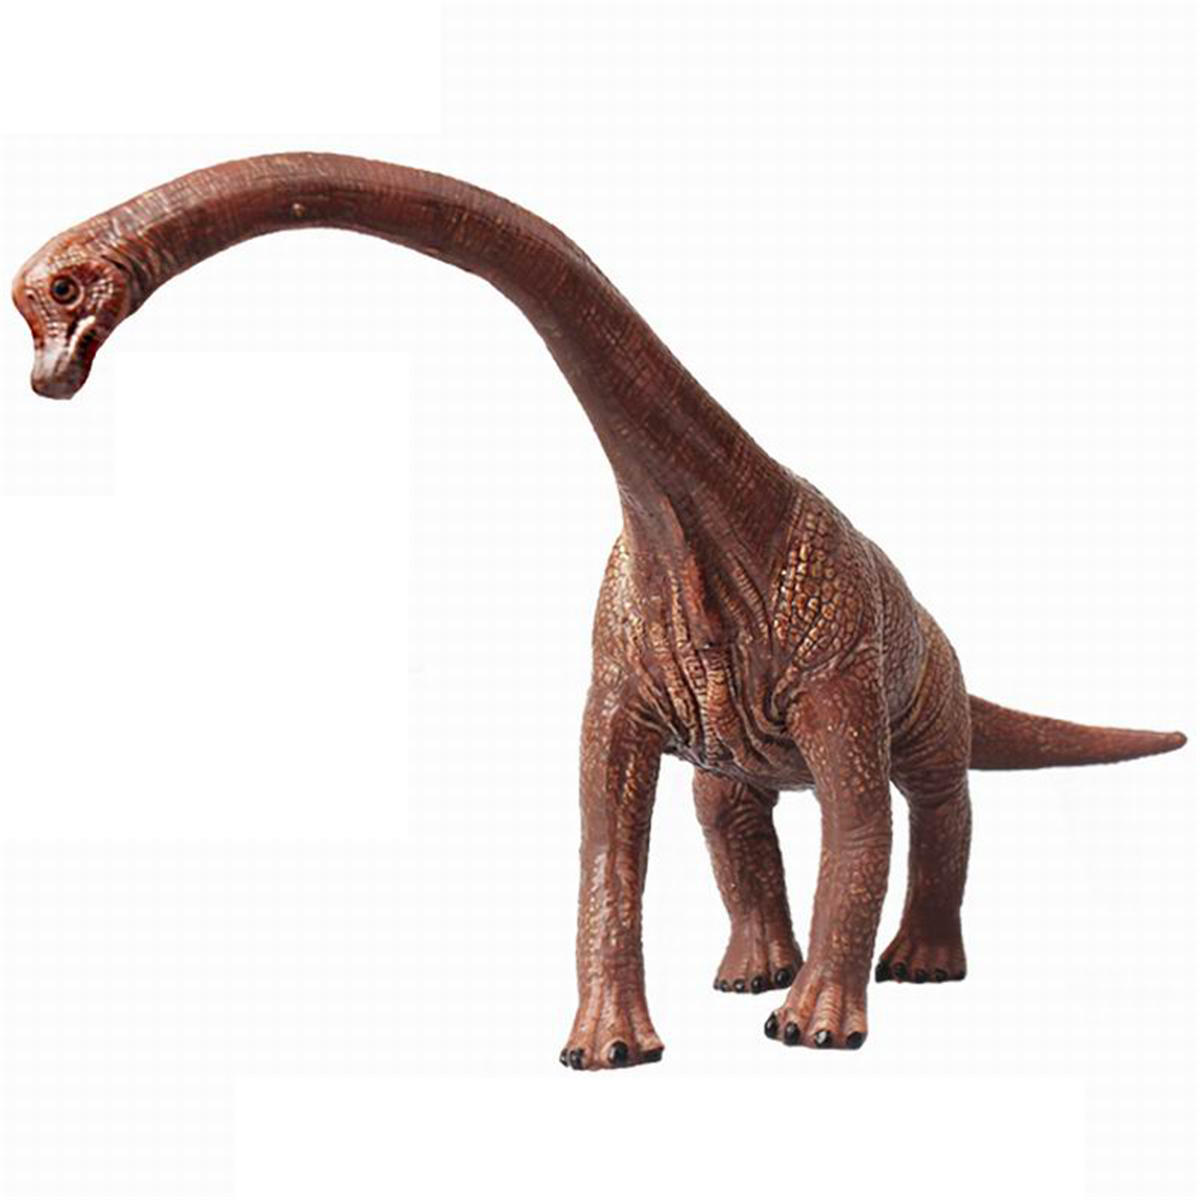 Educational Large Brachiosaurus Dinosaur Toy Diecast Model Birthday Gift For Boy Kids